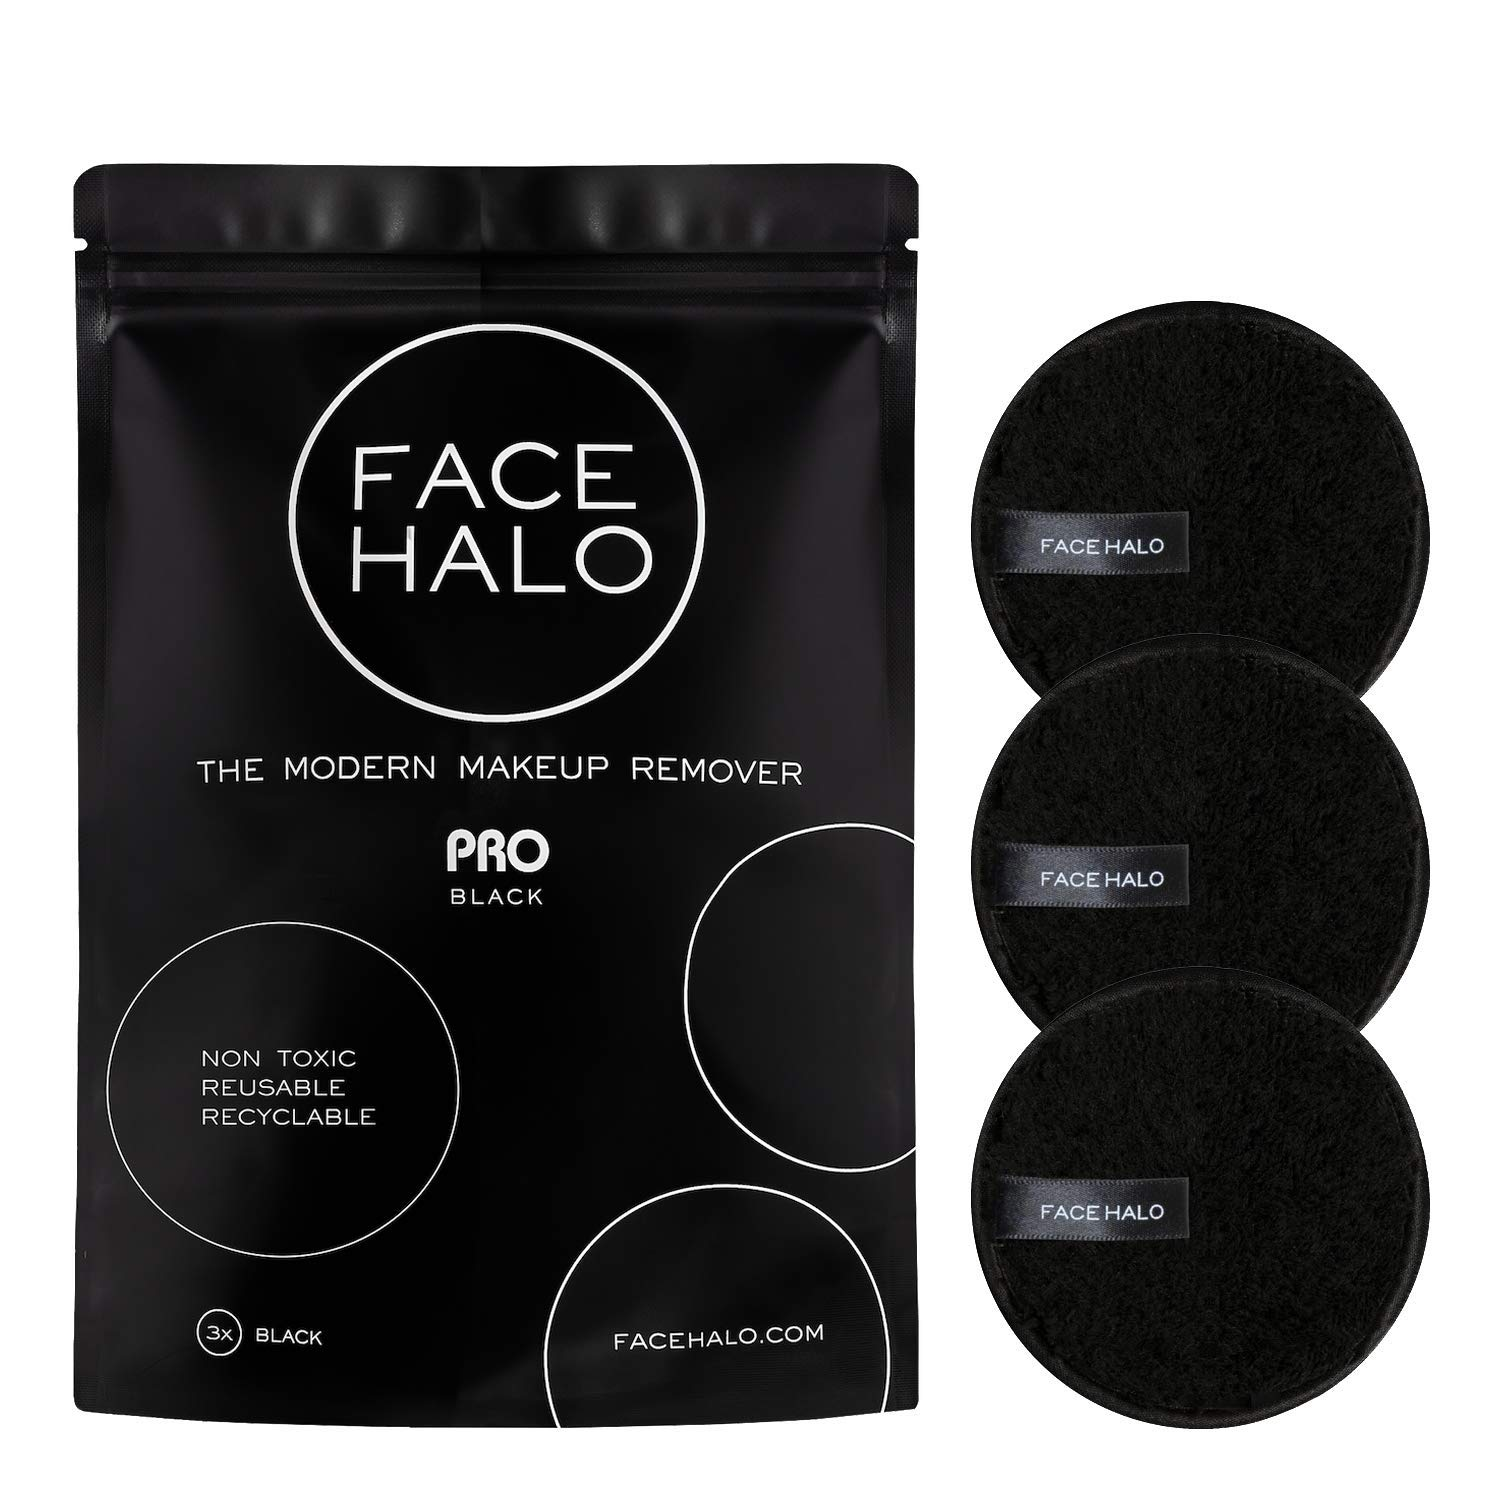 Face Halo | PRO Reusable Makeup Remover Pads, Black Round Makeup Remover Pads for Heavy Makeup & Masks - Microfiber Makeup Remover Wipes for Mascara, Eye Shadow, Lipstick, Foundation (Pack of 3)